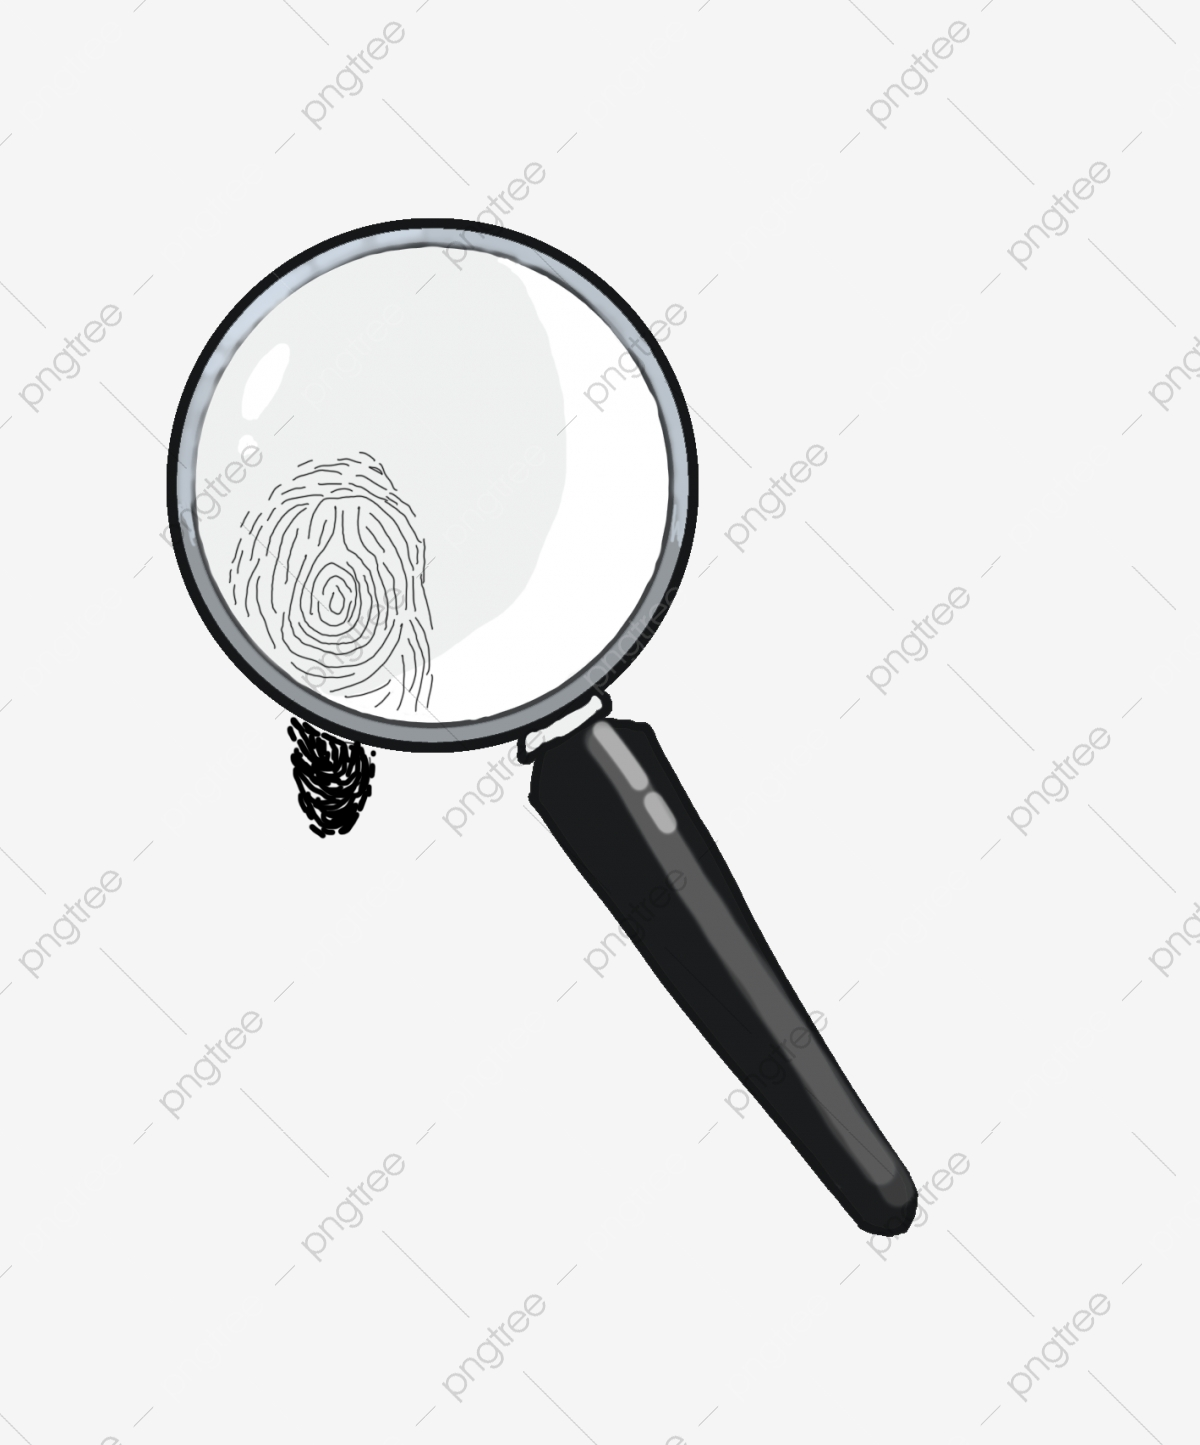 free cartoon science magnifying glass png scientist observation fingerprint png transparent clipart image and psd file for free download https pngtree com freepng free cartoon science magnifying glass png 4659540 html